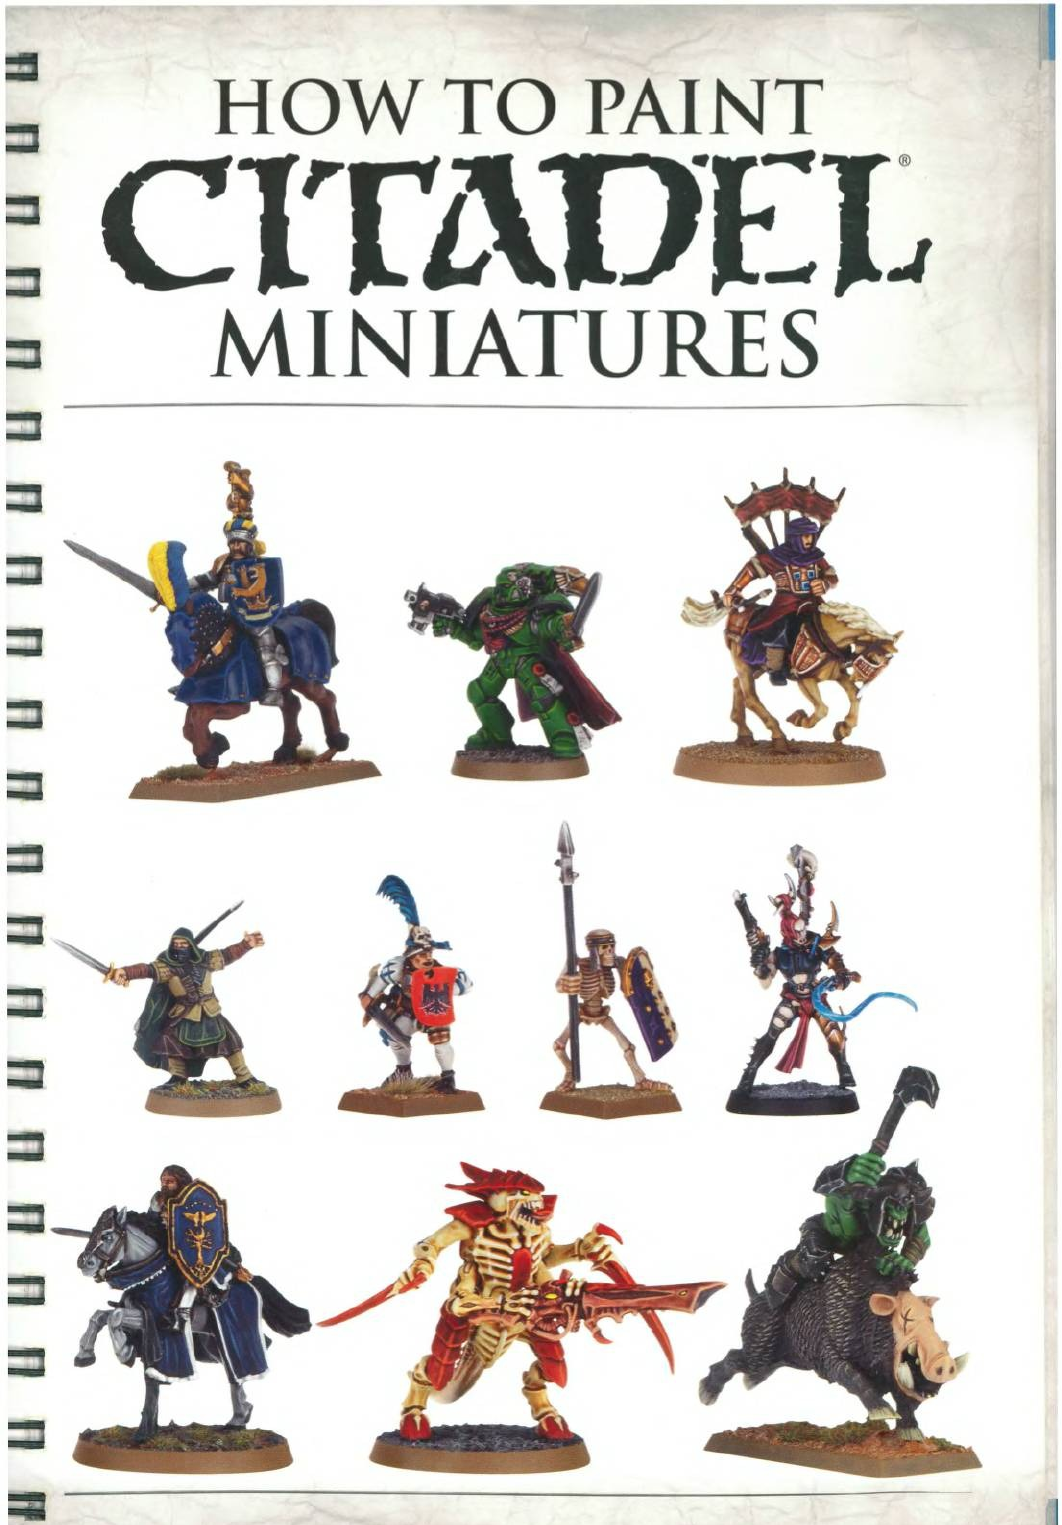 How To Paint Citadel Miniatures 2012 Pdf Document